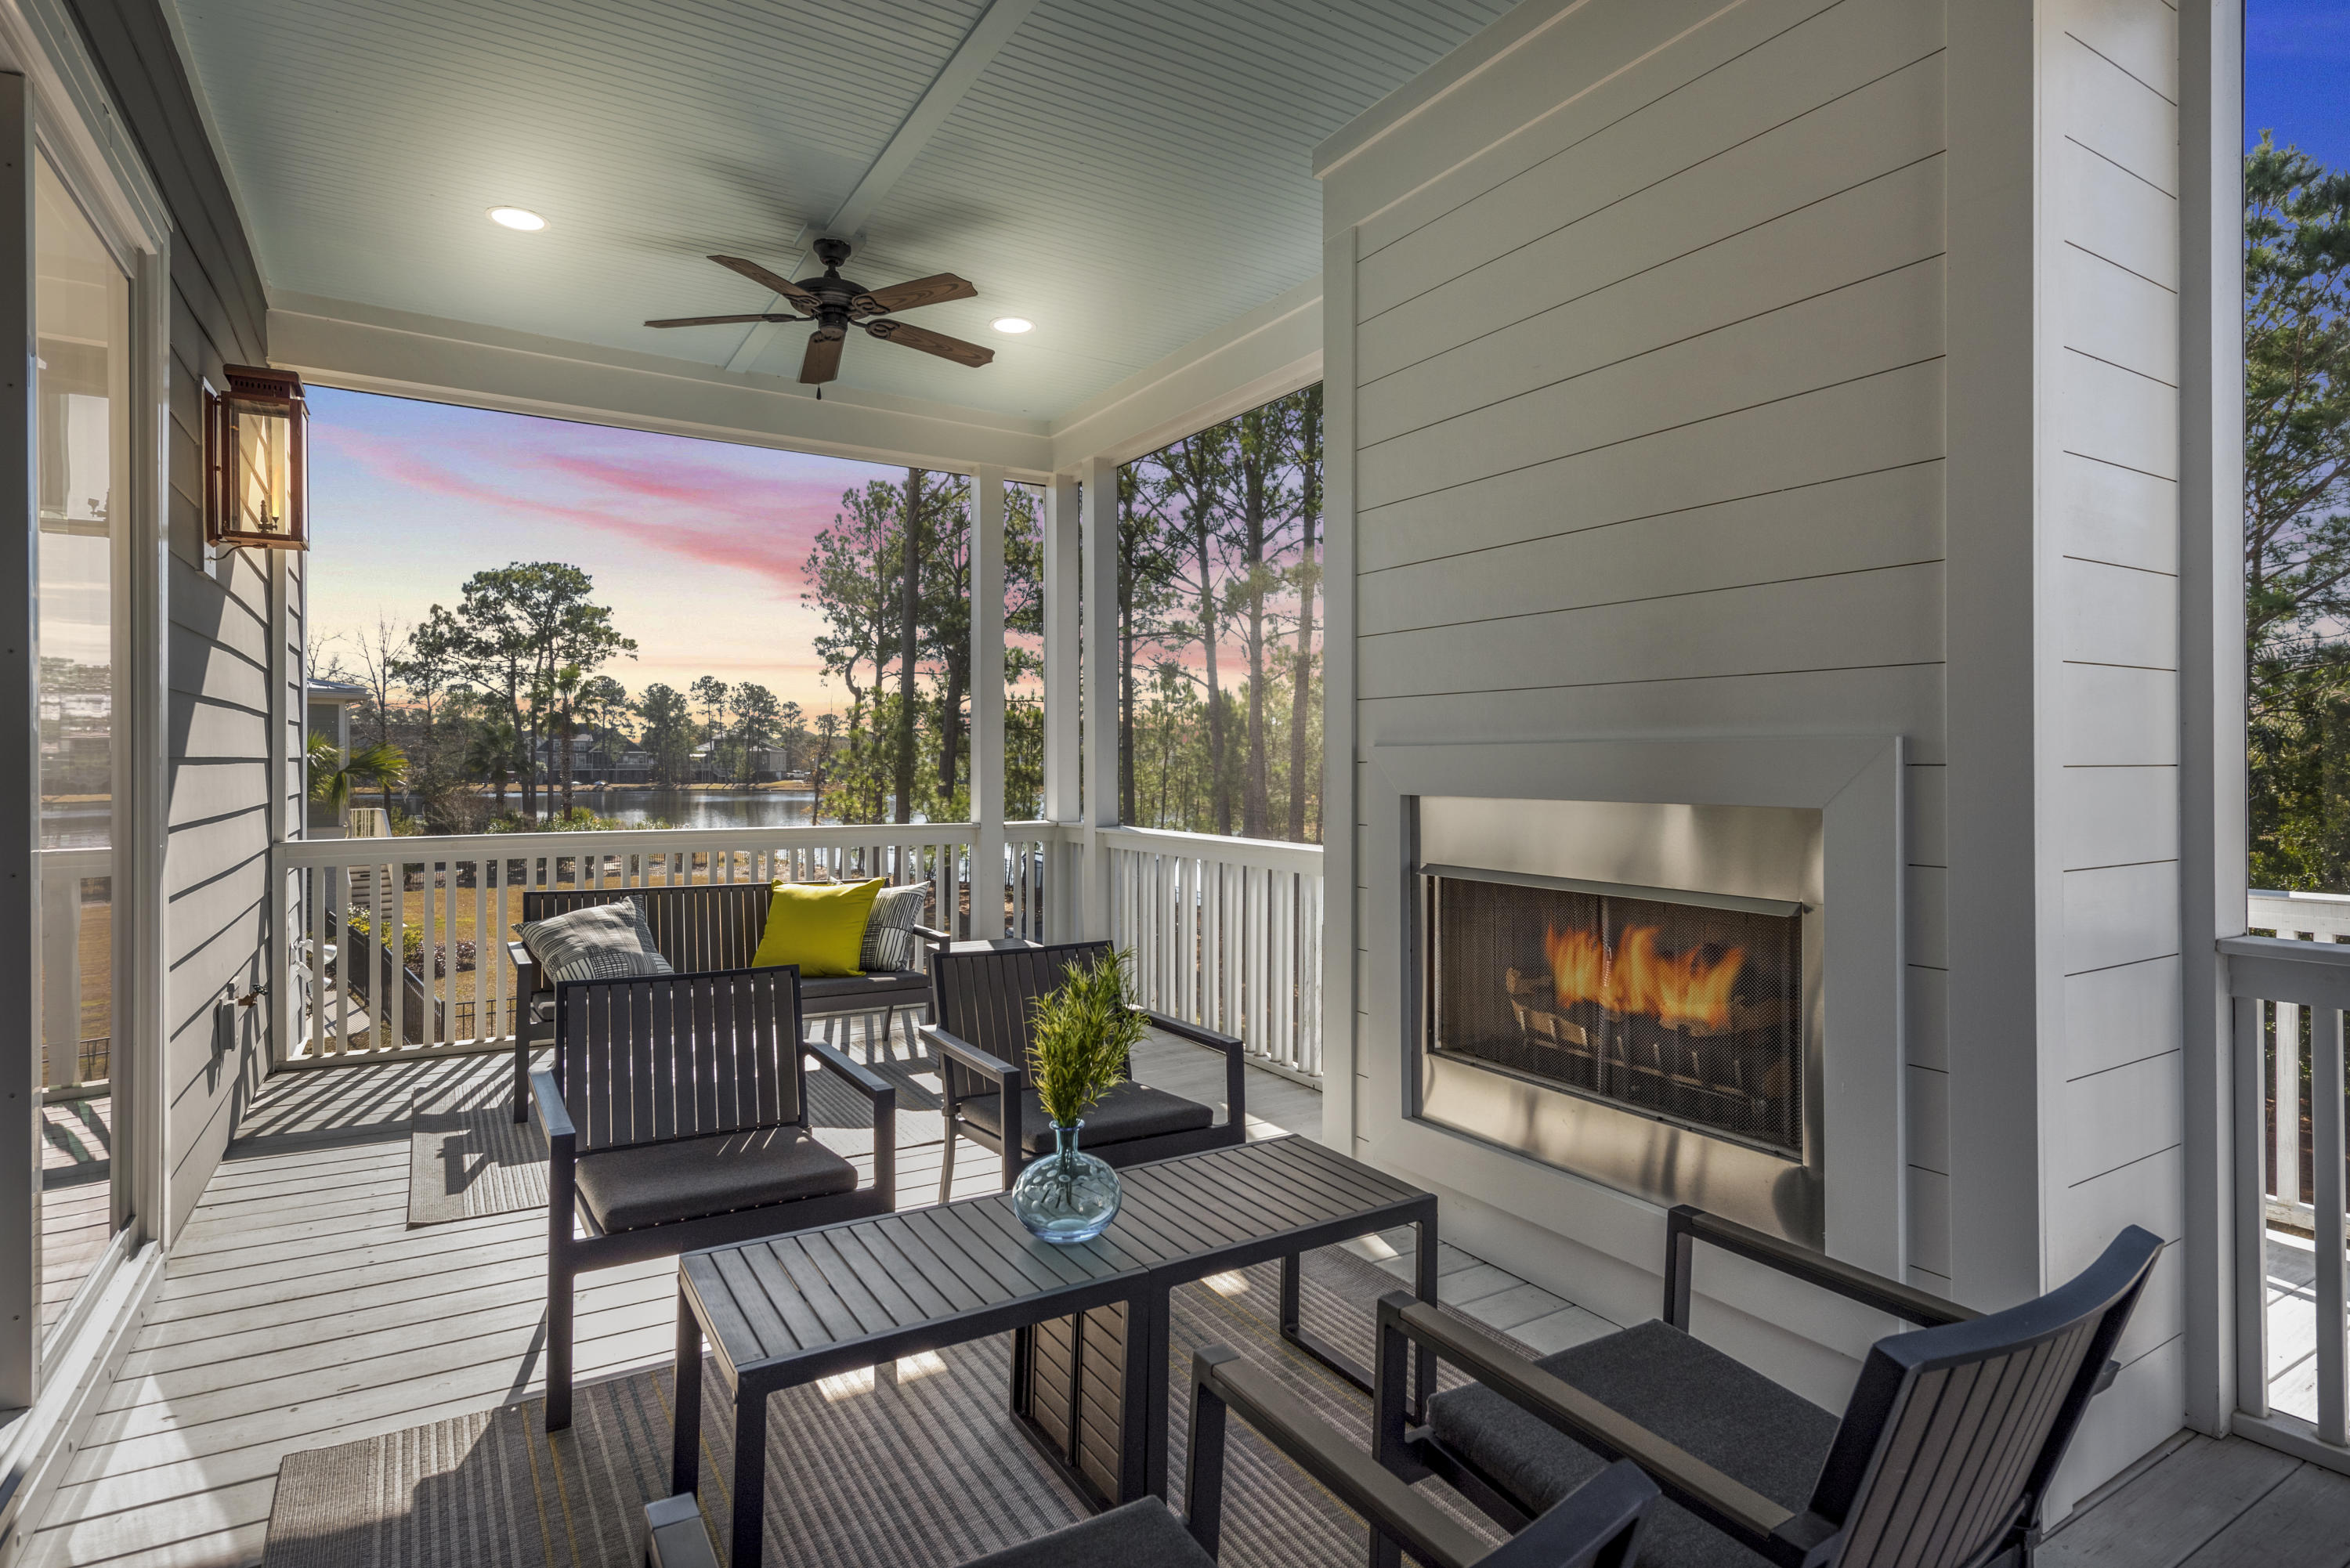 Rivertowne Country Club Homes For Sale - 1544 Rivertowne Country Club, Mount Pleasant, SC - 4